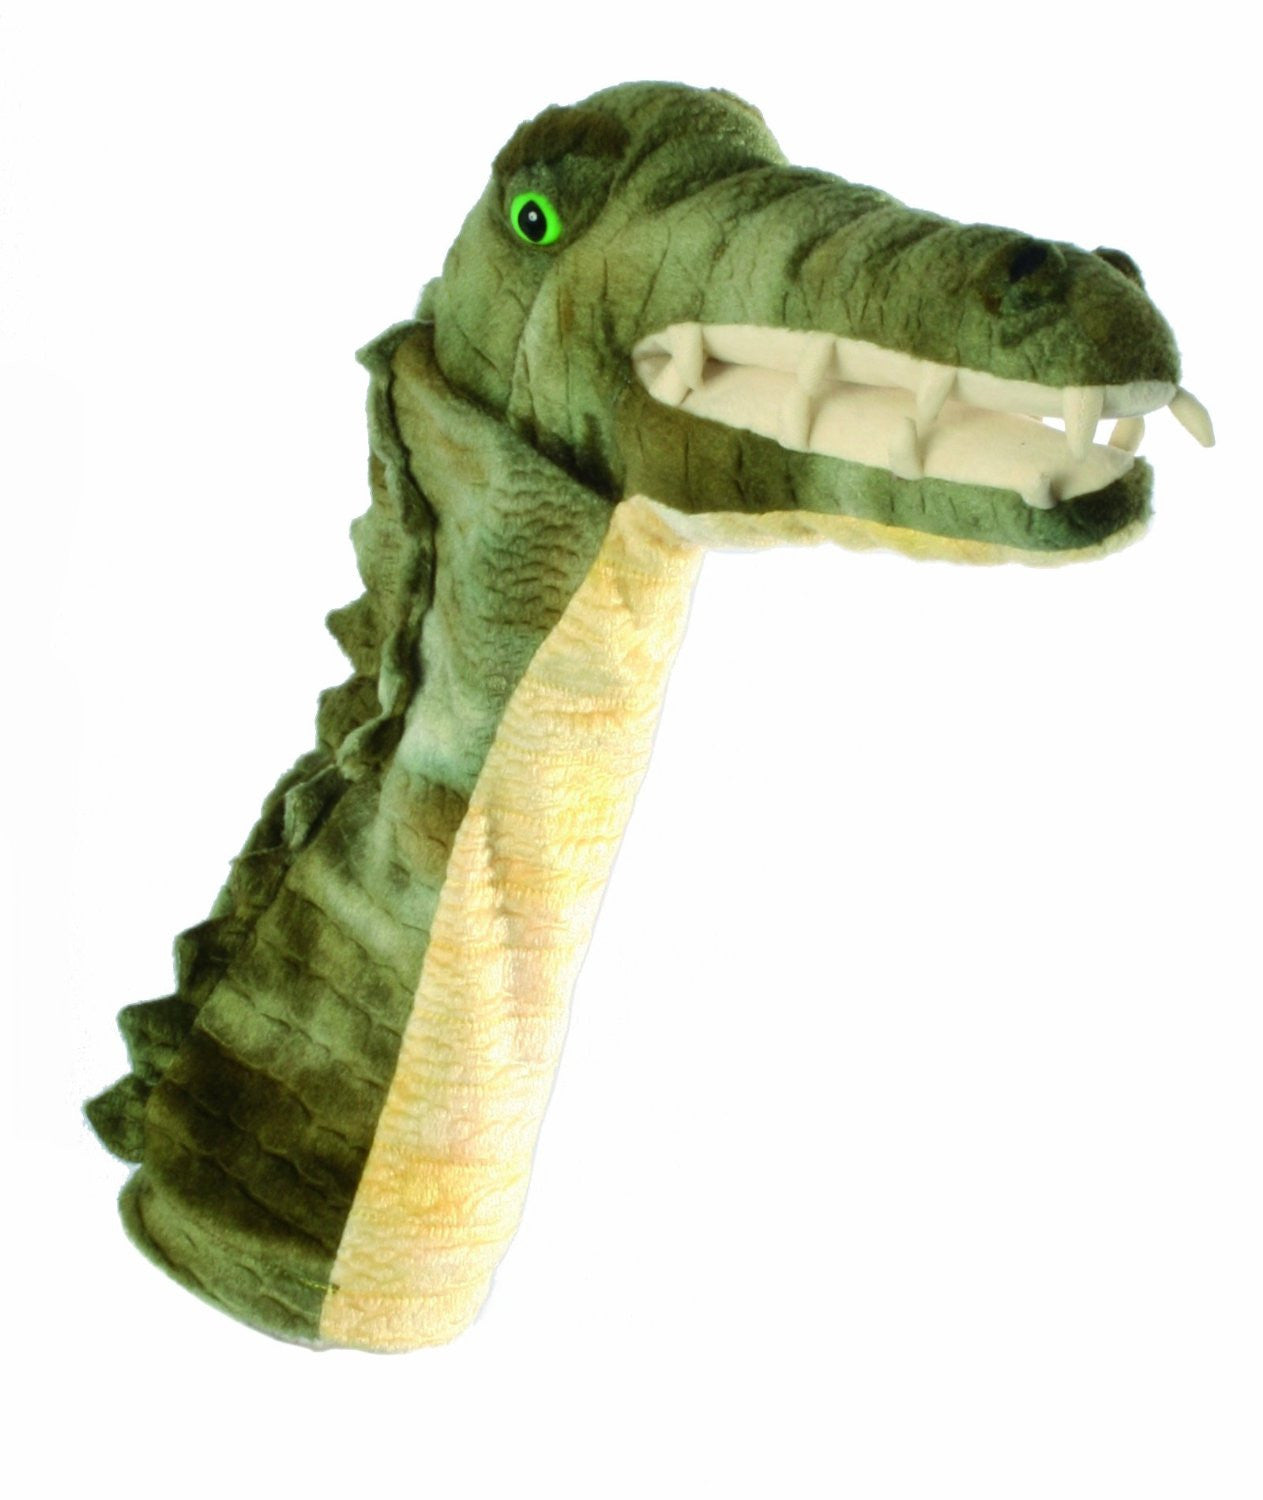 Long Sleeved - 15 Inch Glove Puppet - CROCODILE - Collectible Hand Puppet Character - Off The Wall Toys and Gifts